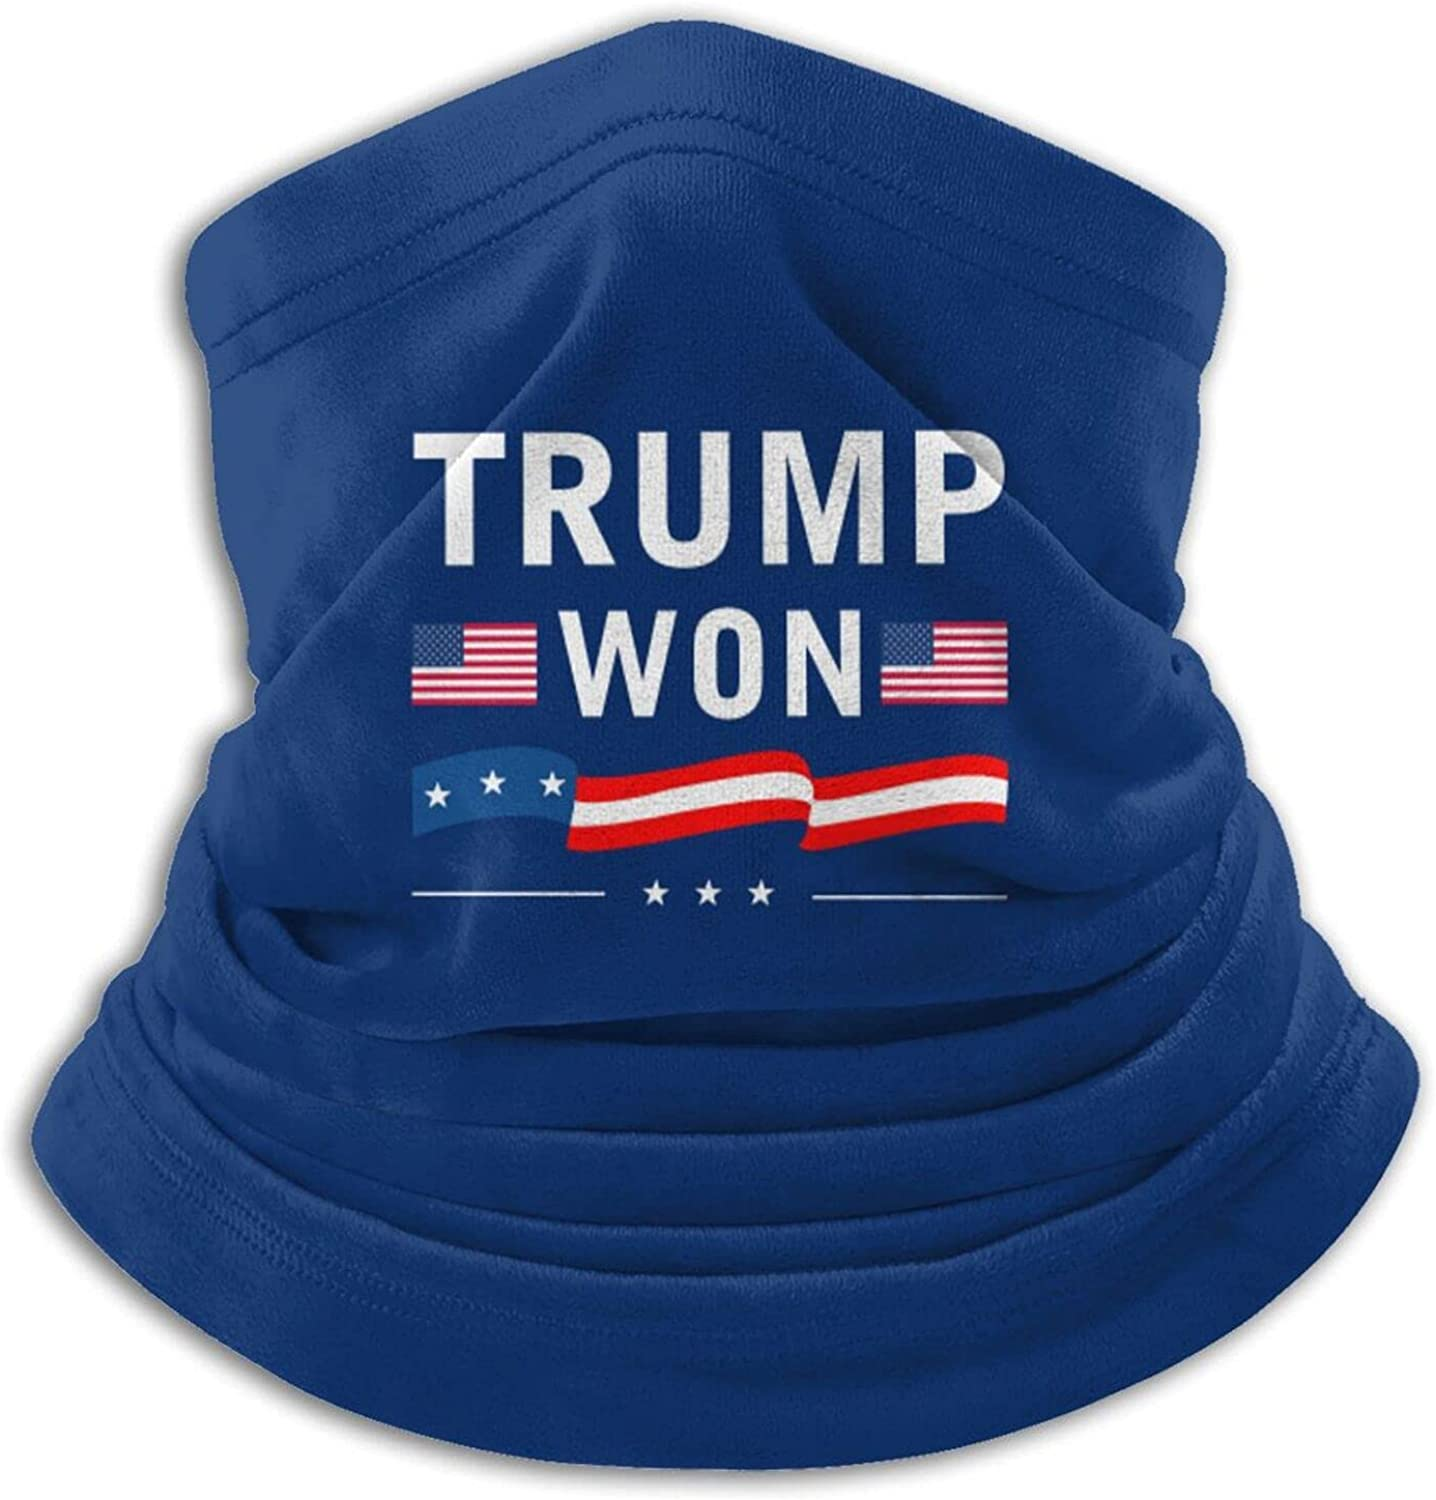 Trump won unisex winter neck gaiter face cover mask, windproof balaclava scarf for fishing, running & hiking